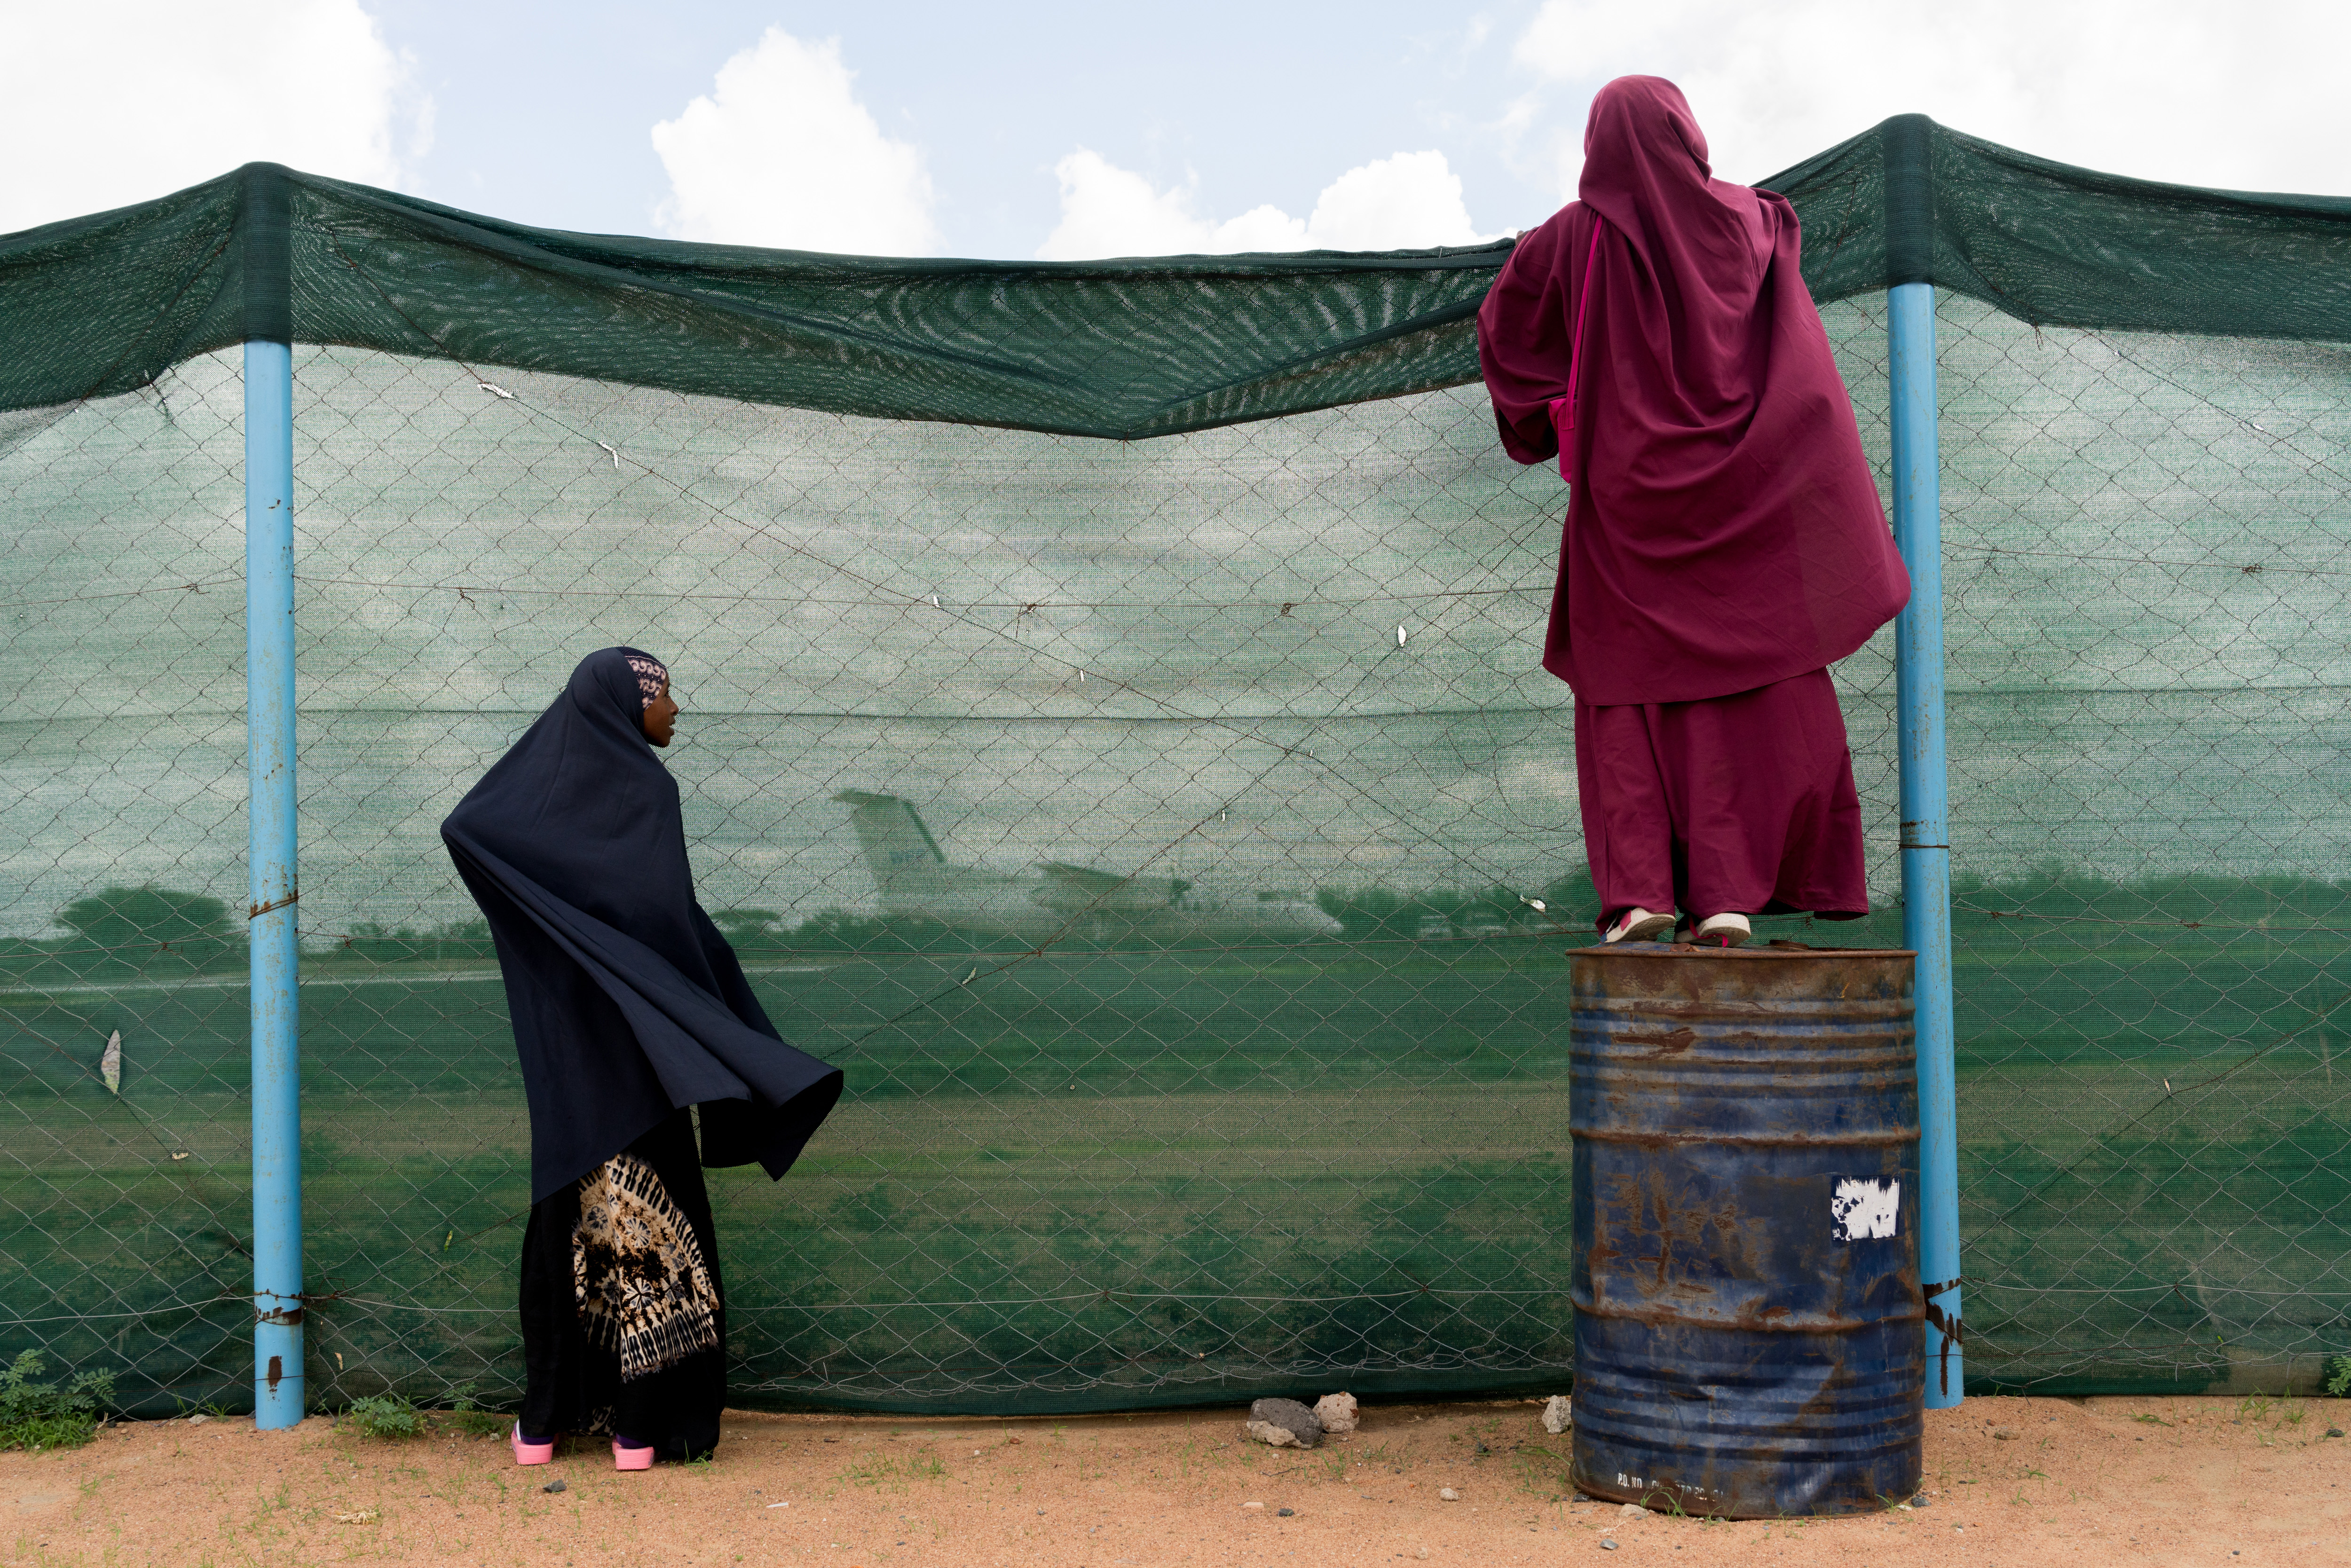 Khairo Hassan's girls watch as their plane lands in Dadaab, Kenya. MUST CREDIT: photo for The Washington Post by Adriane Ohanesian.